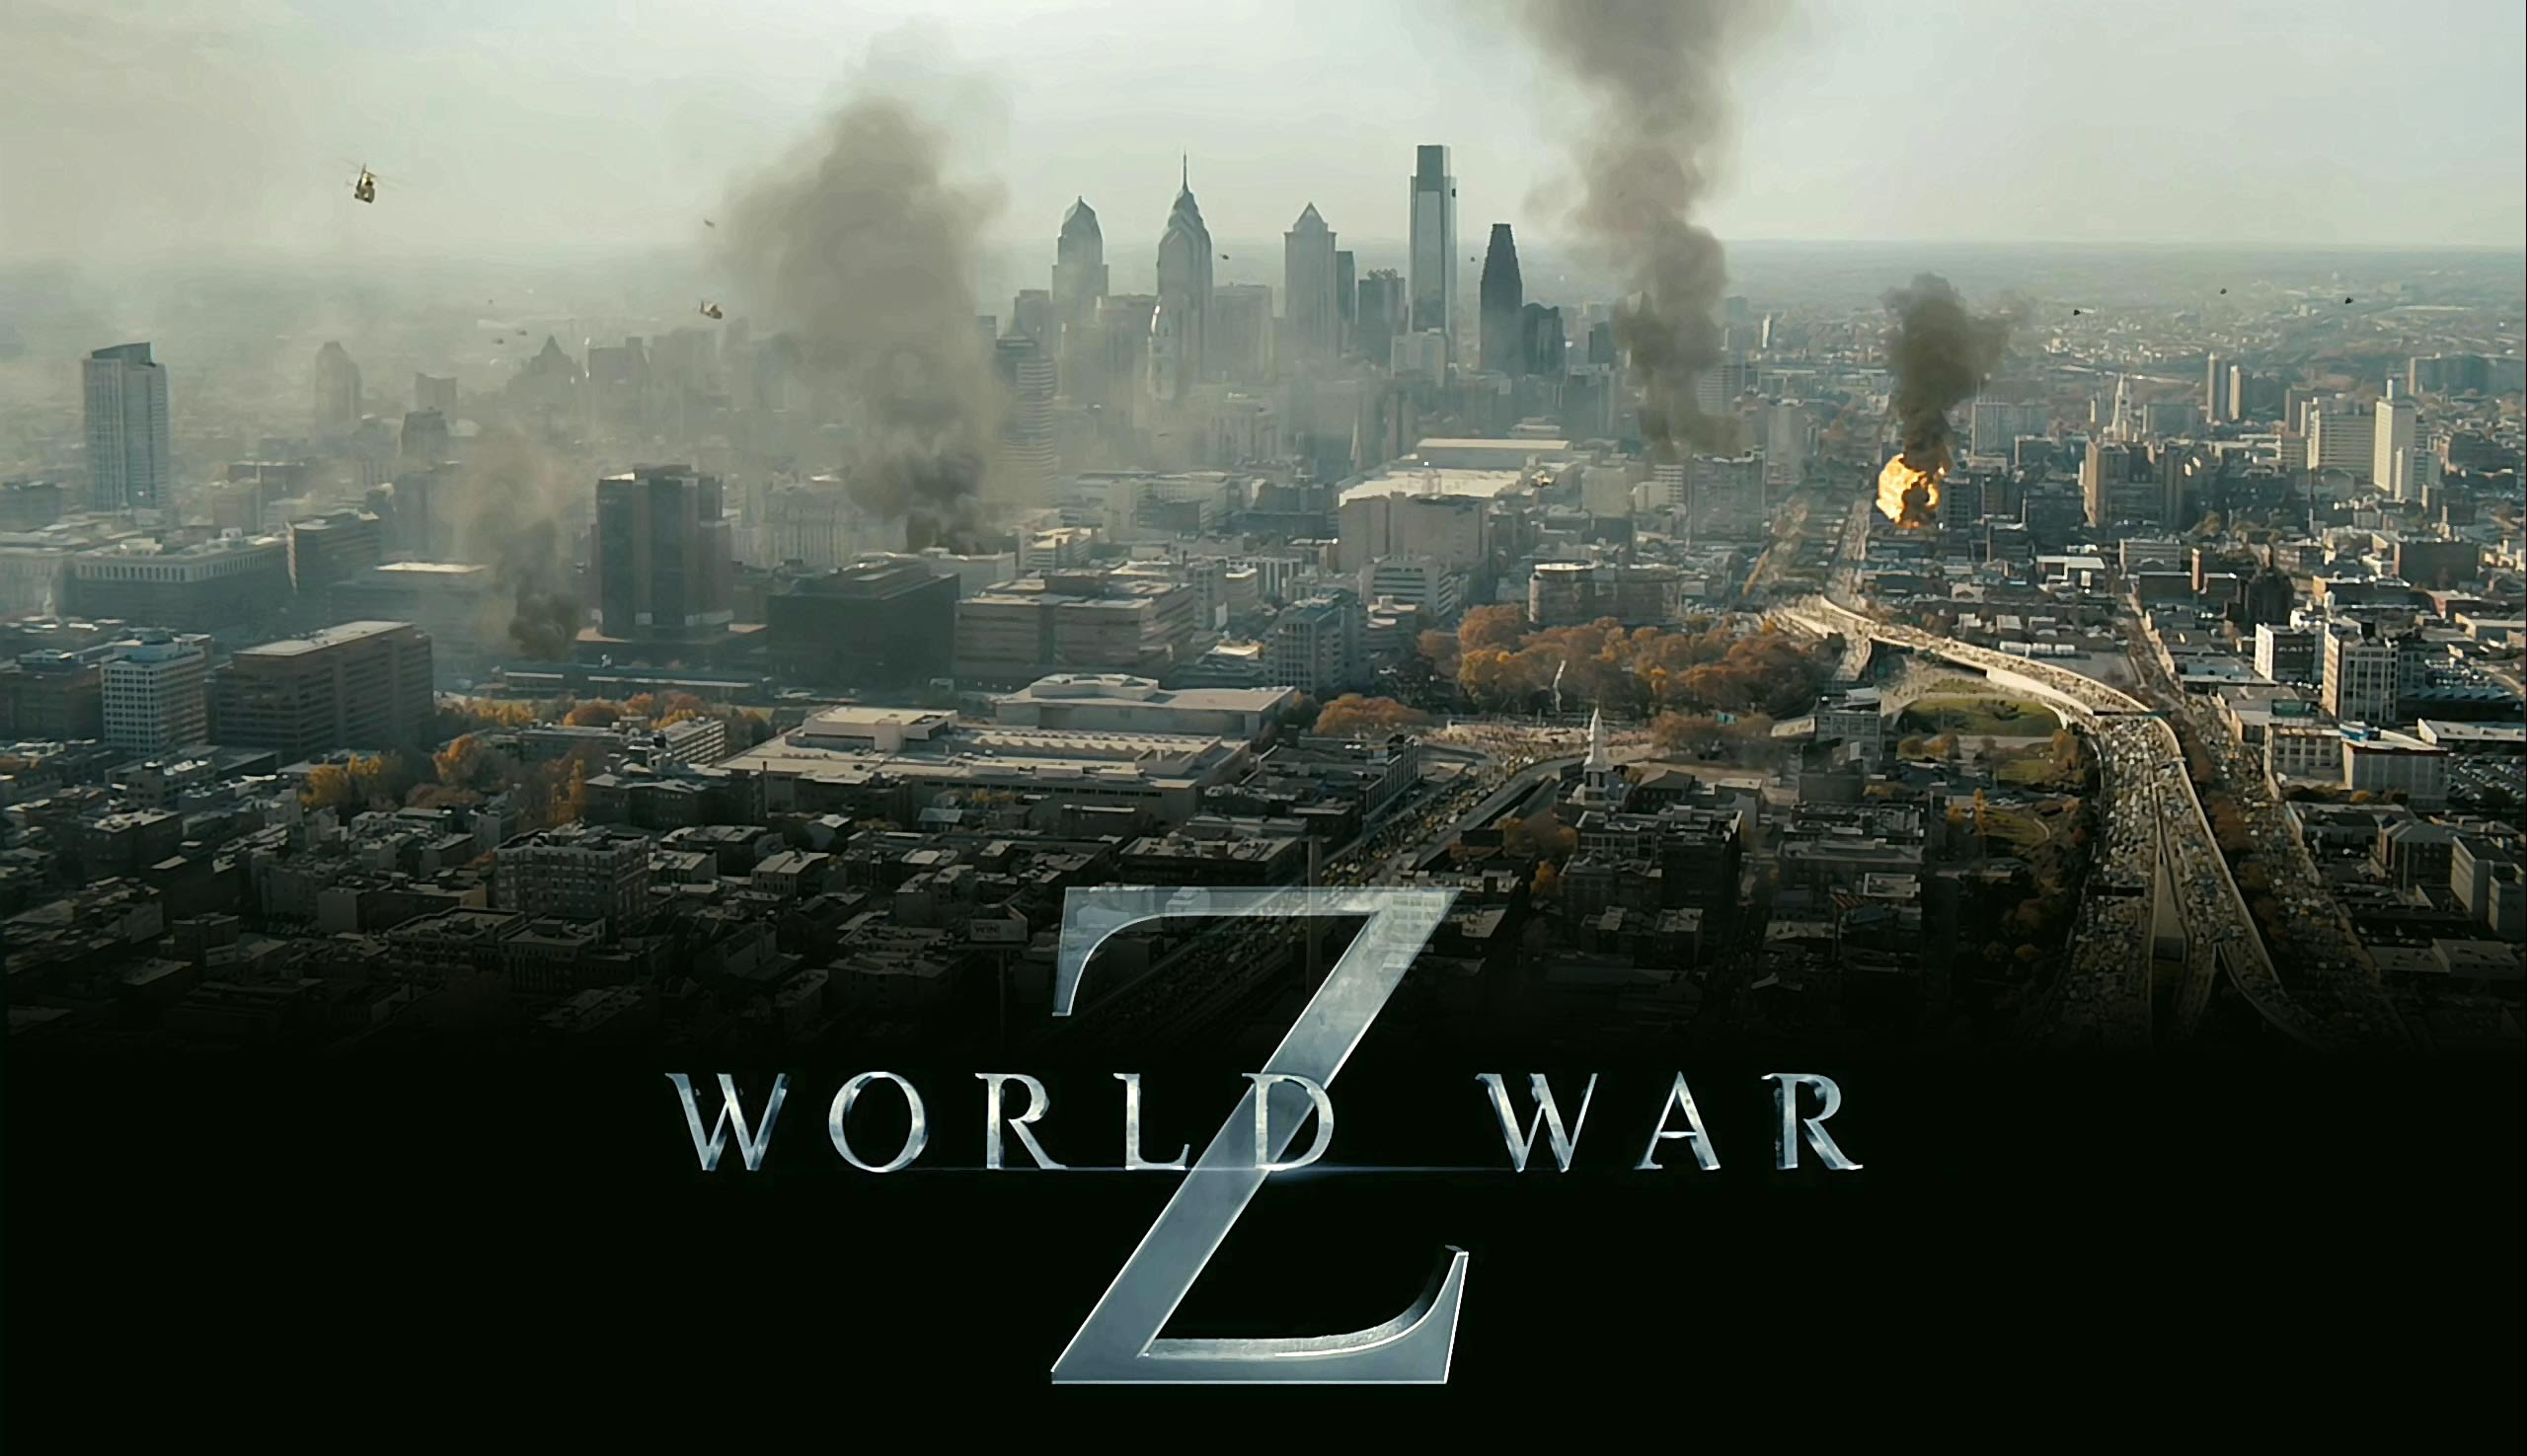 http://www.filmofilia.com/wp-content/uploads/2012/11/world-war-z1.jpg